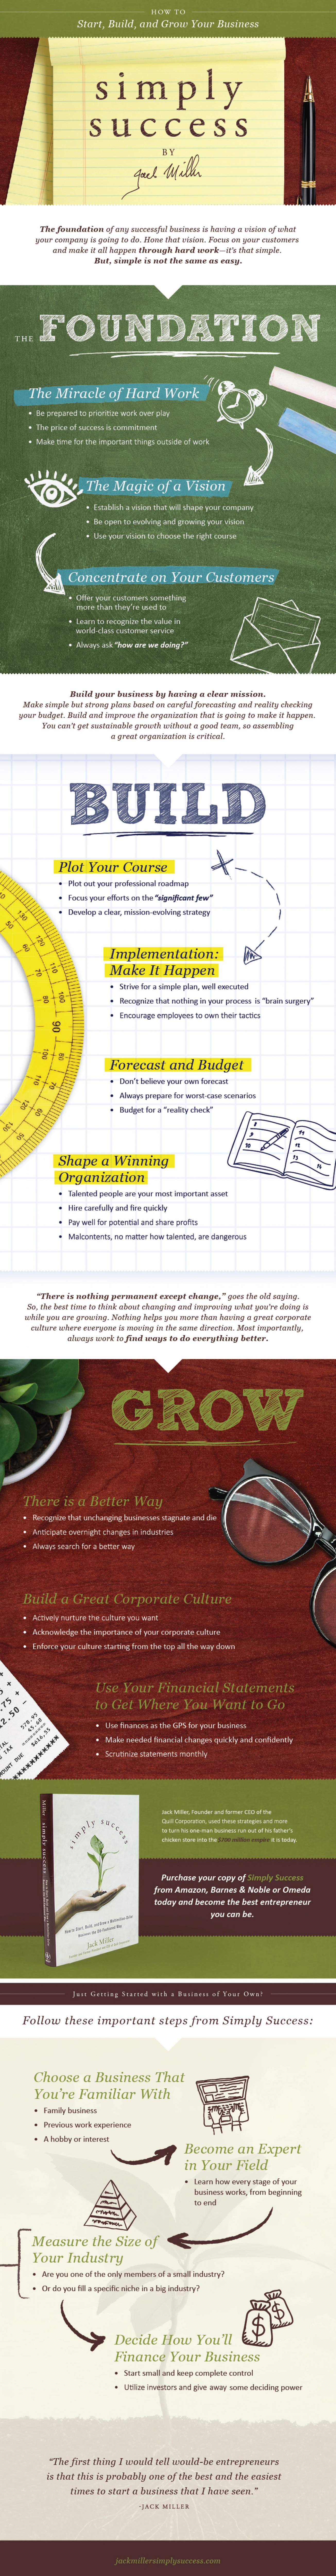 Jack Miller Simply Success: How to Start, Build, and Grow Your Business Infographic